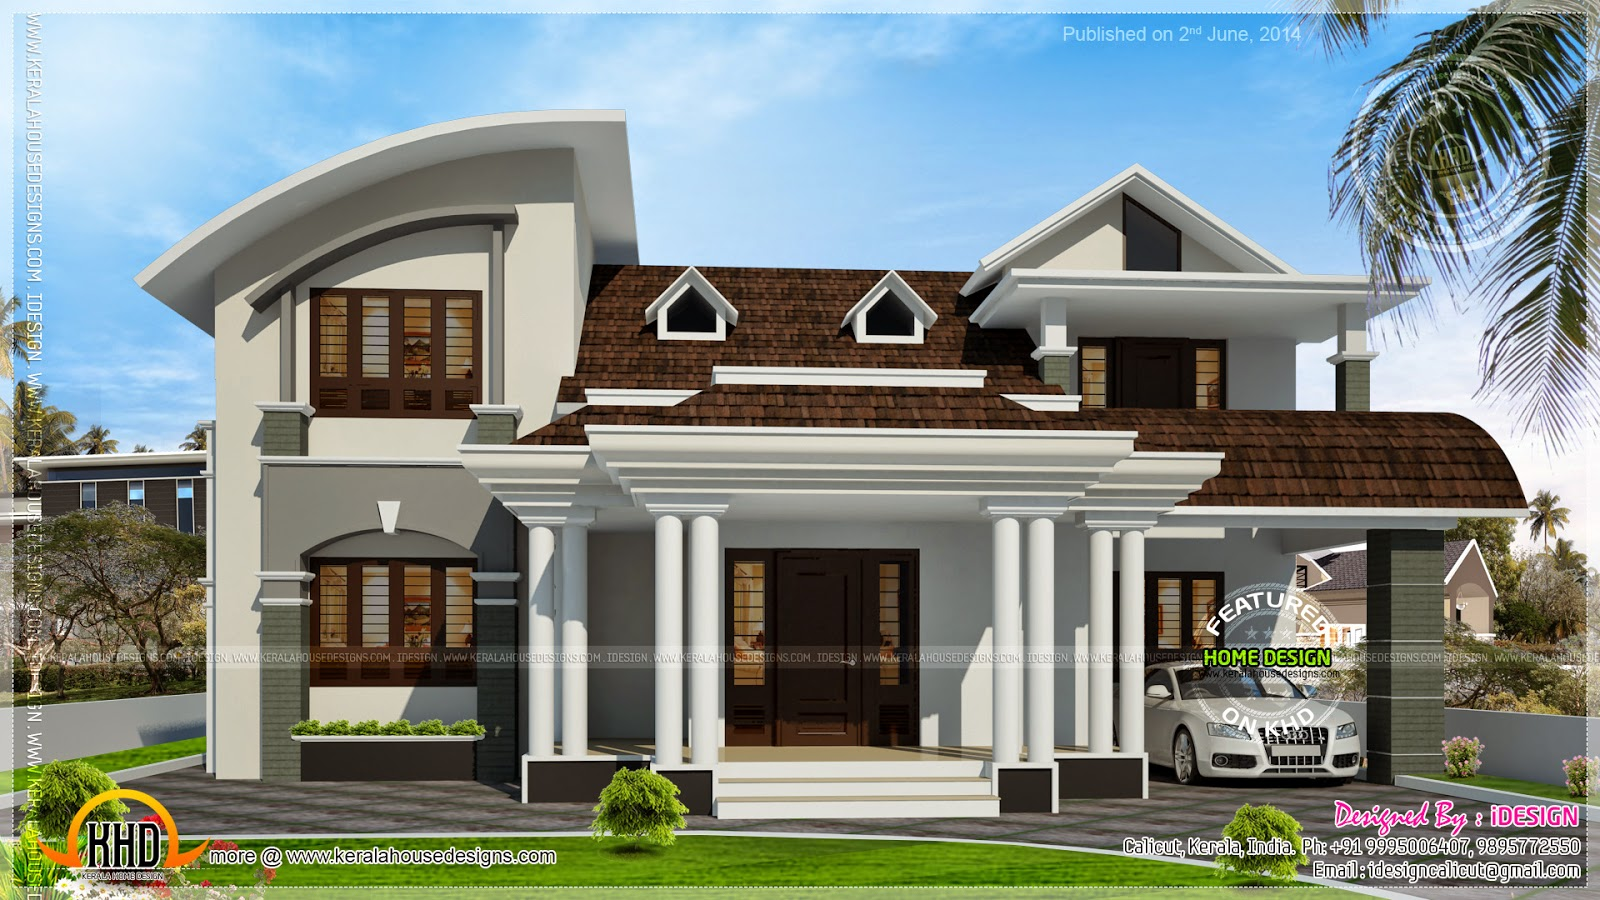 House with beautiful dormer windows kerala home design for Windows for houses design